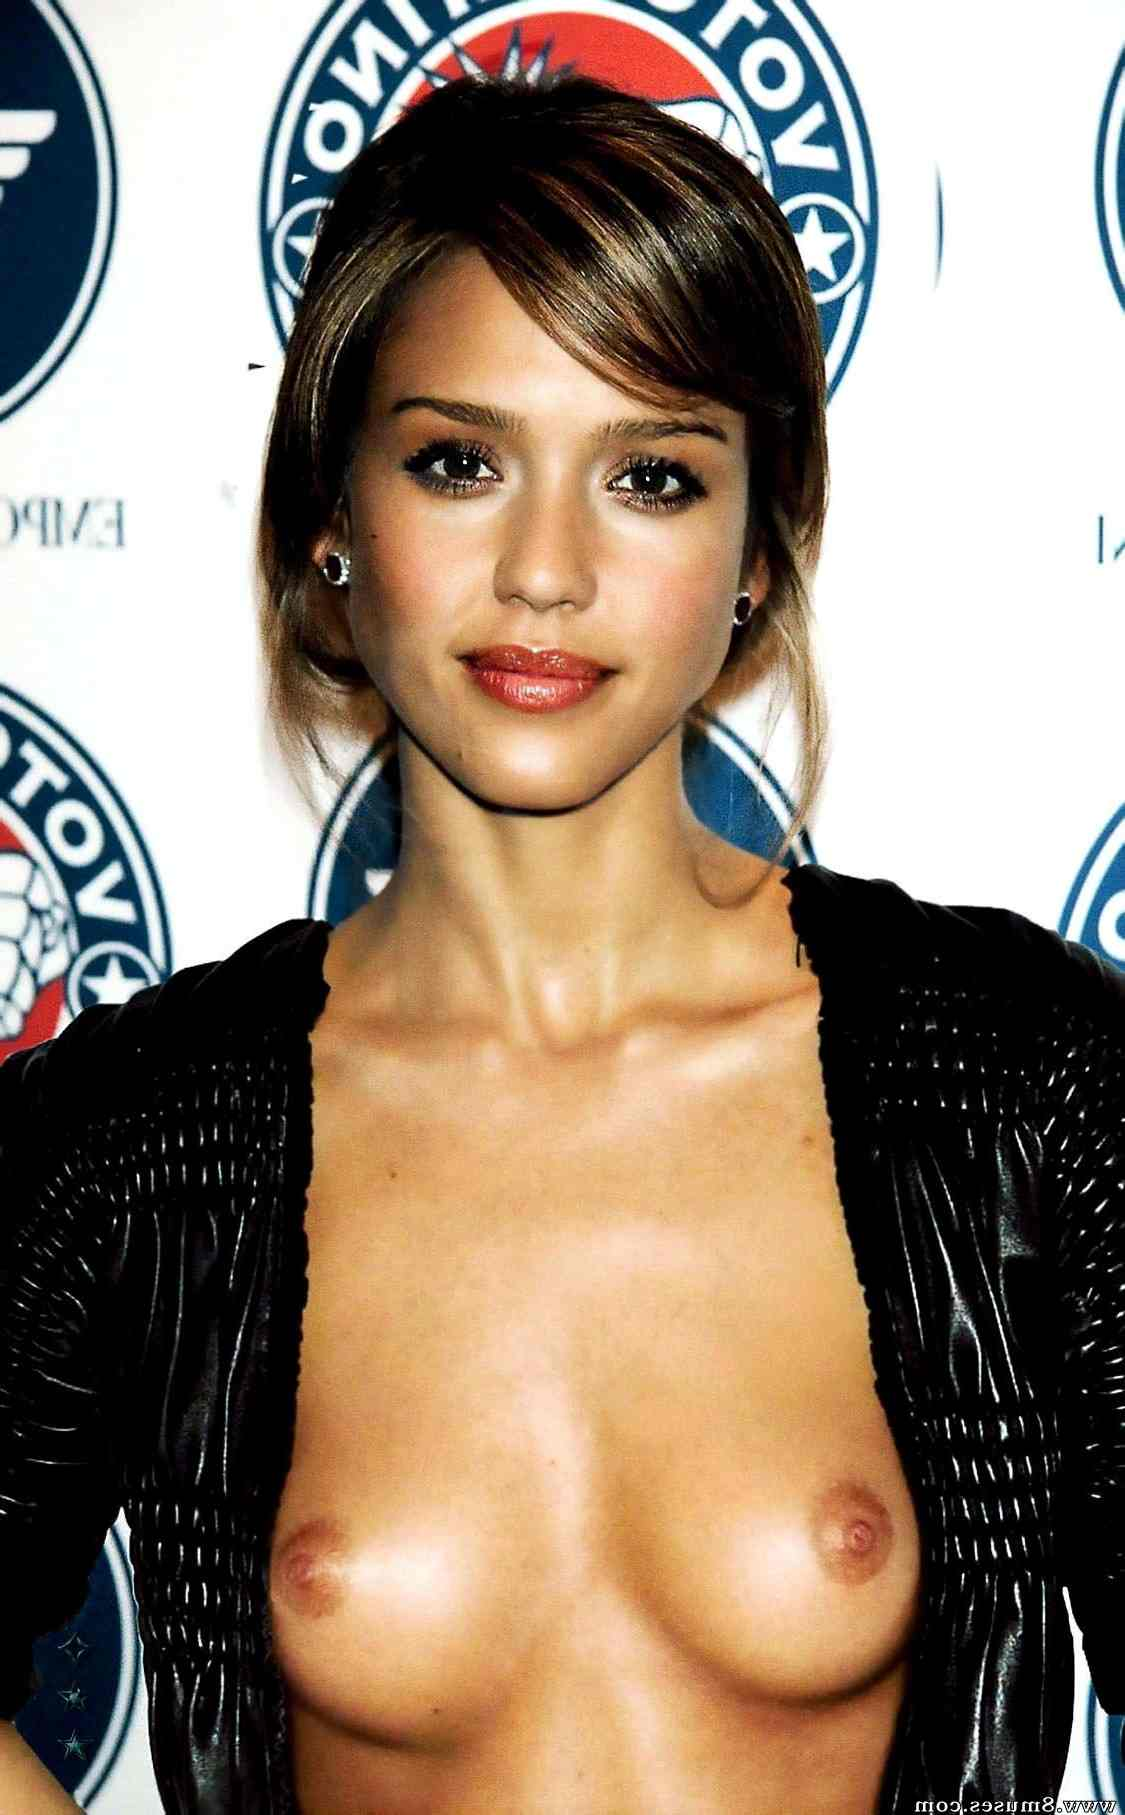 Fake-Celebrities-Sex-Pictures/Jessica-Alba Jessica_Alba__8muses_-_Sex_and_Porn_Comics_379.jpg